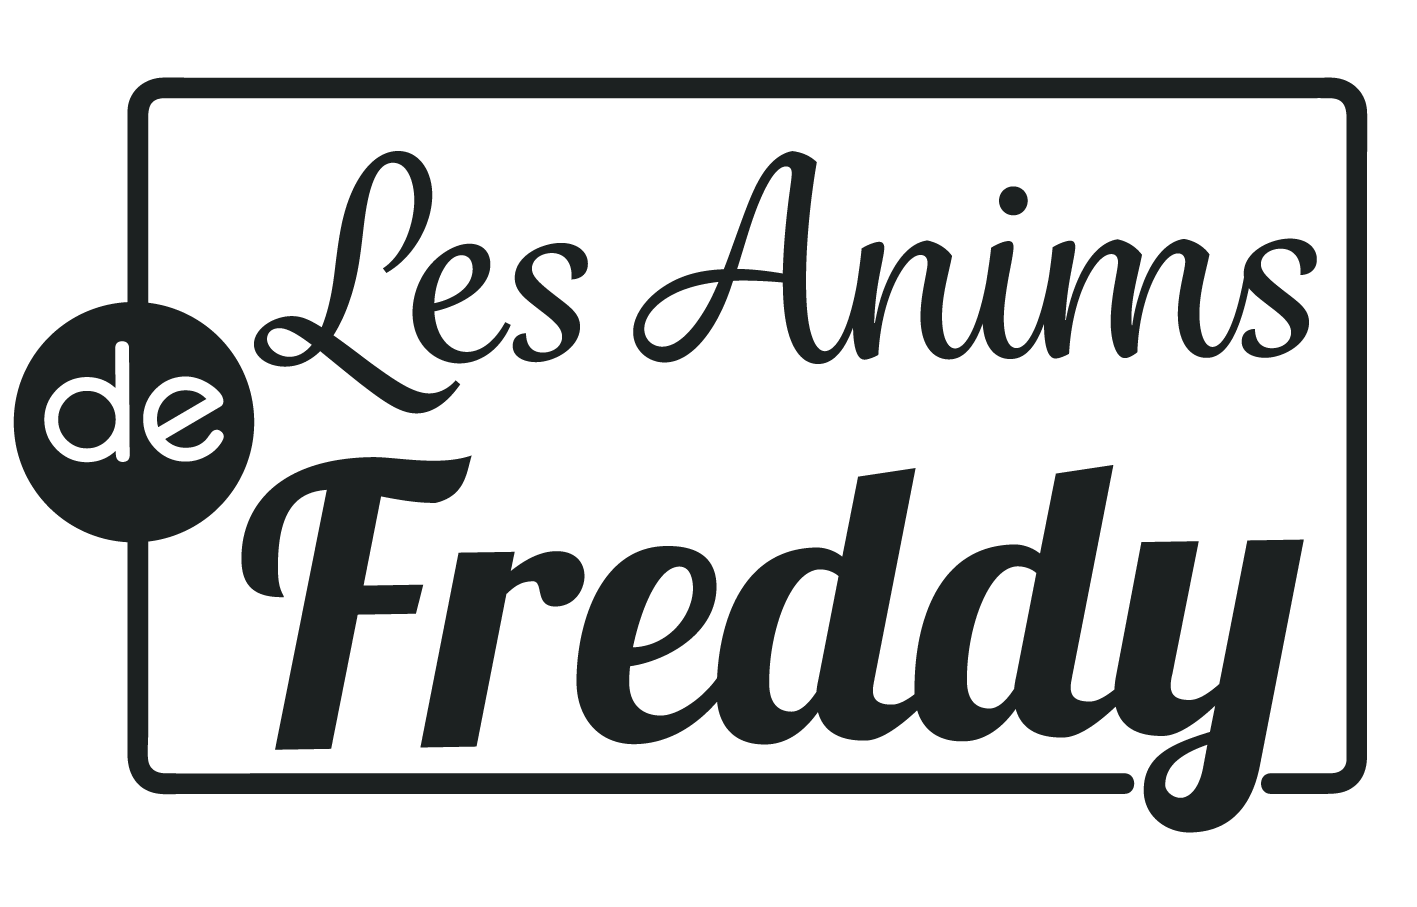 Les anims de freddy